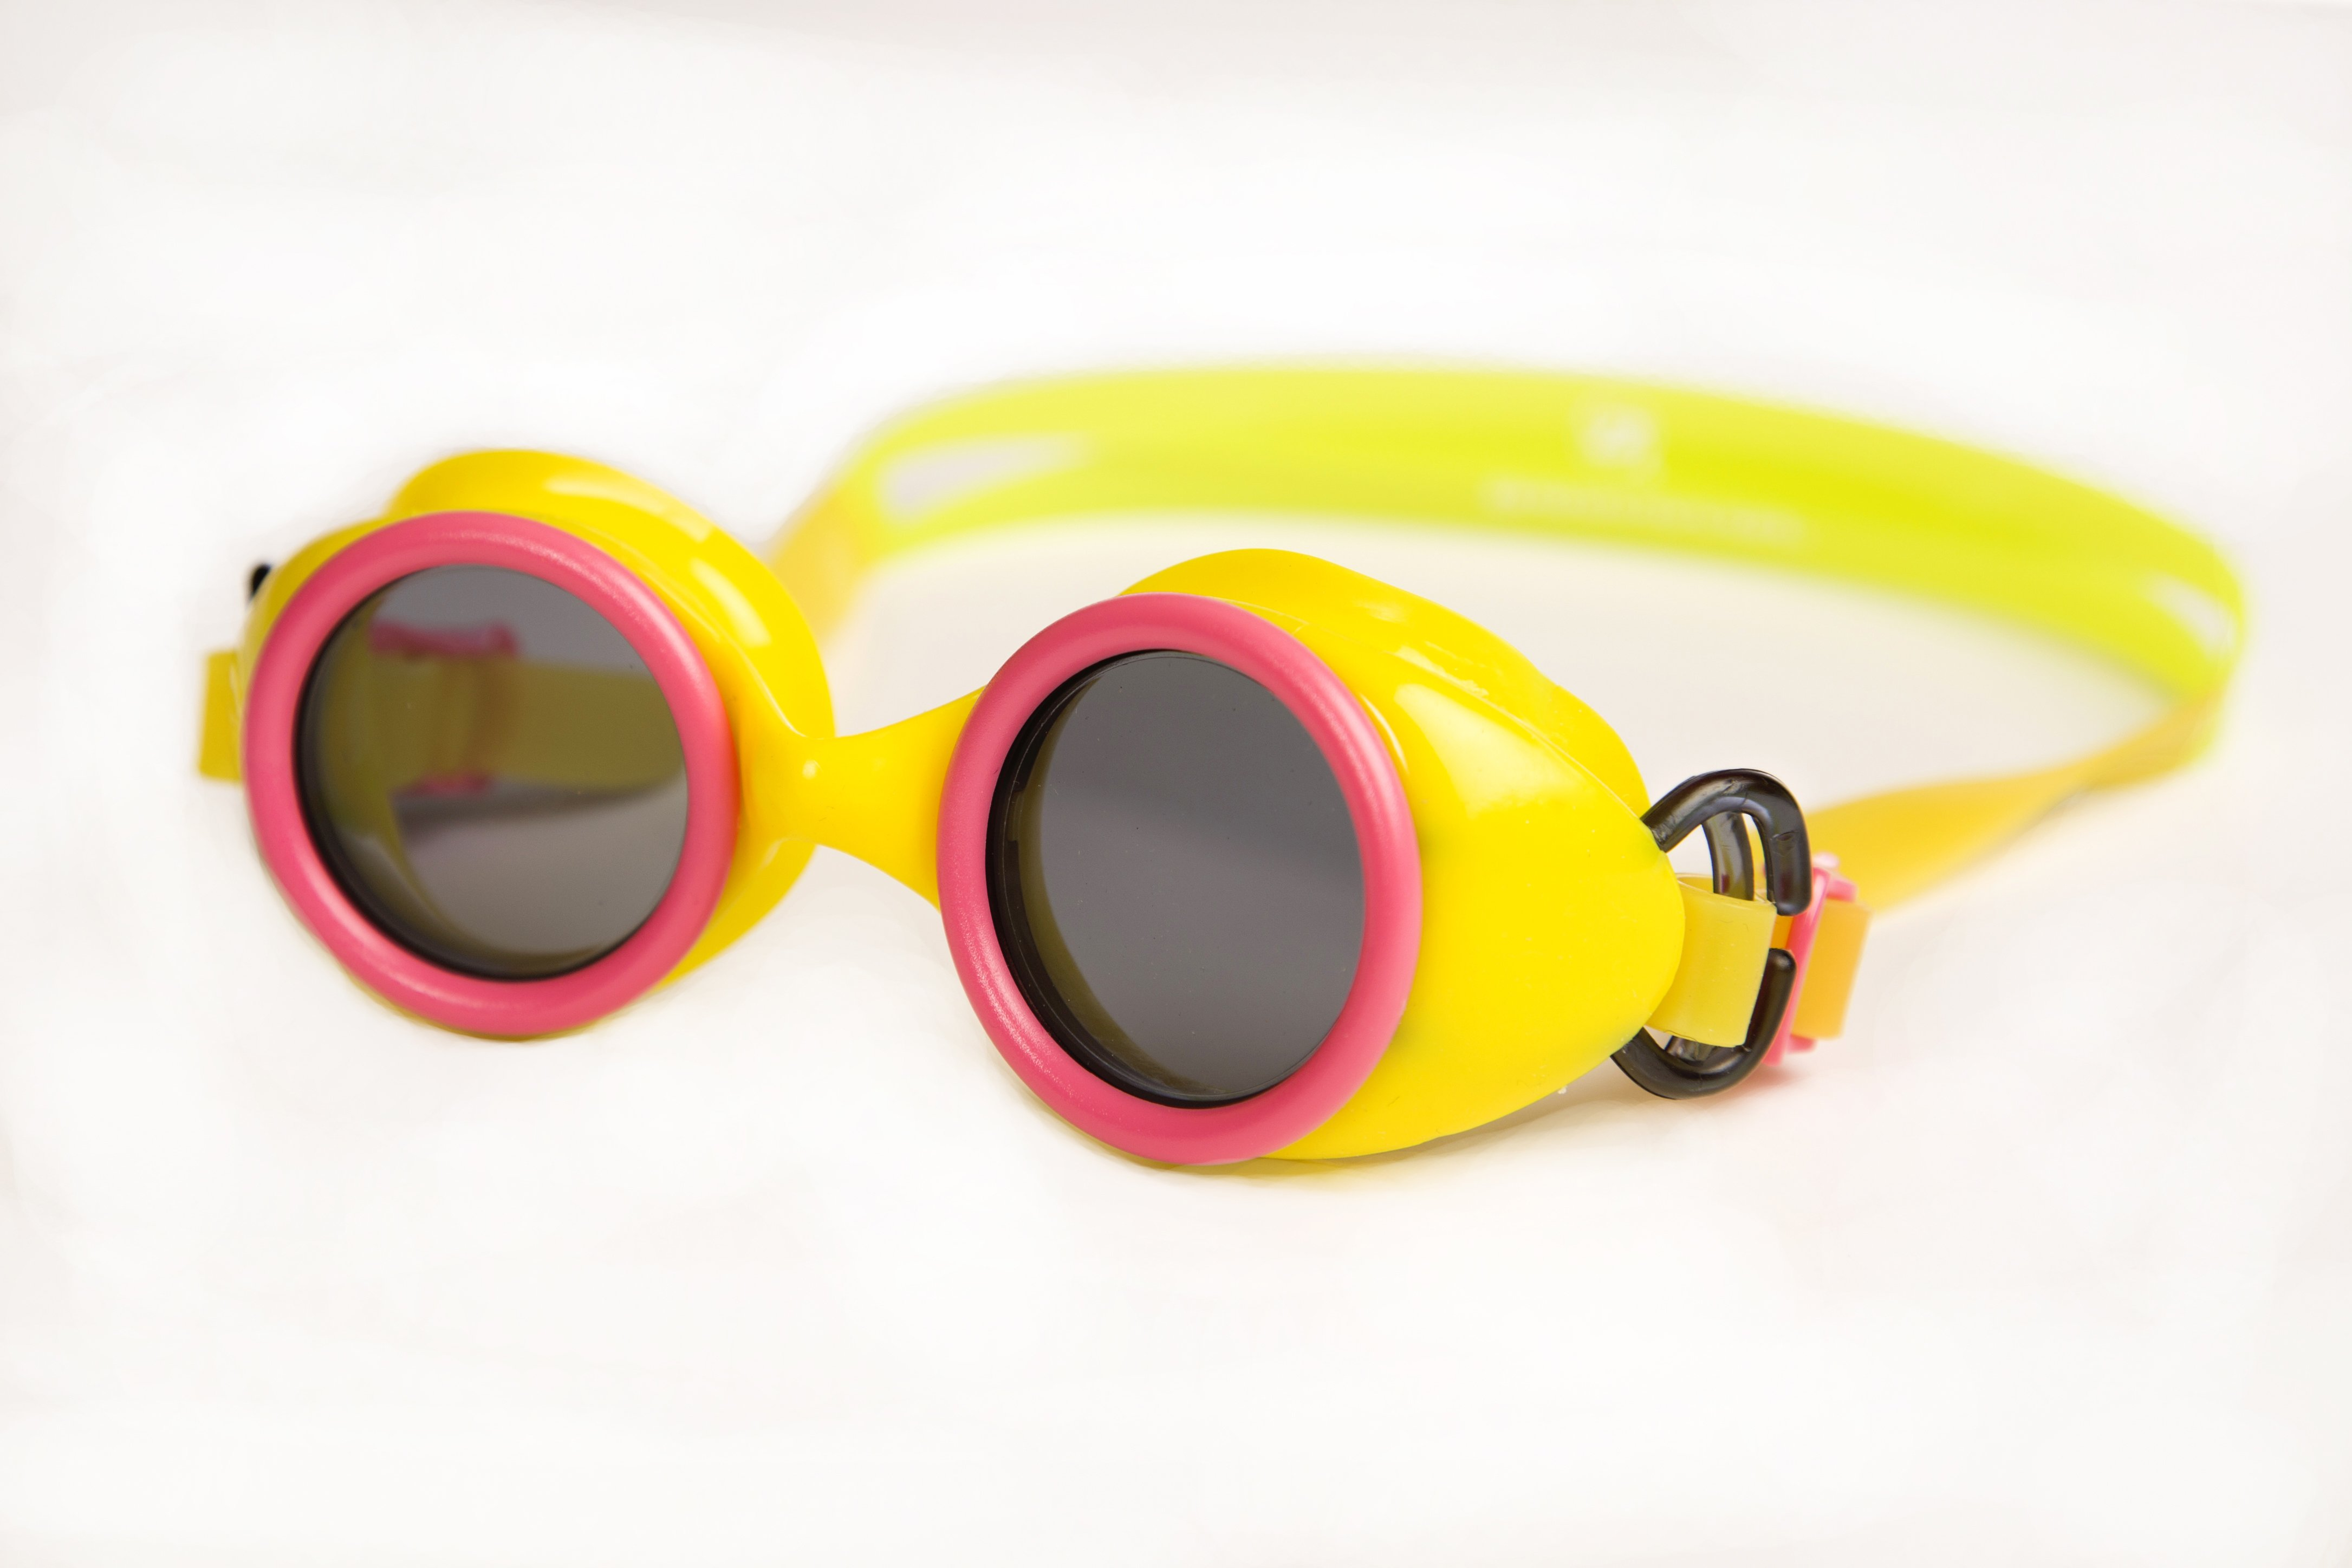 b9c50f88a36 Barracuda Wizard Smoke on Yellow Swim Goggles ...